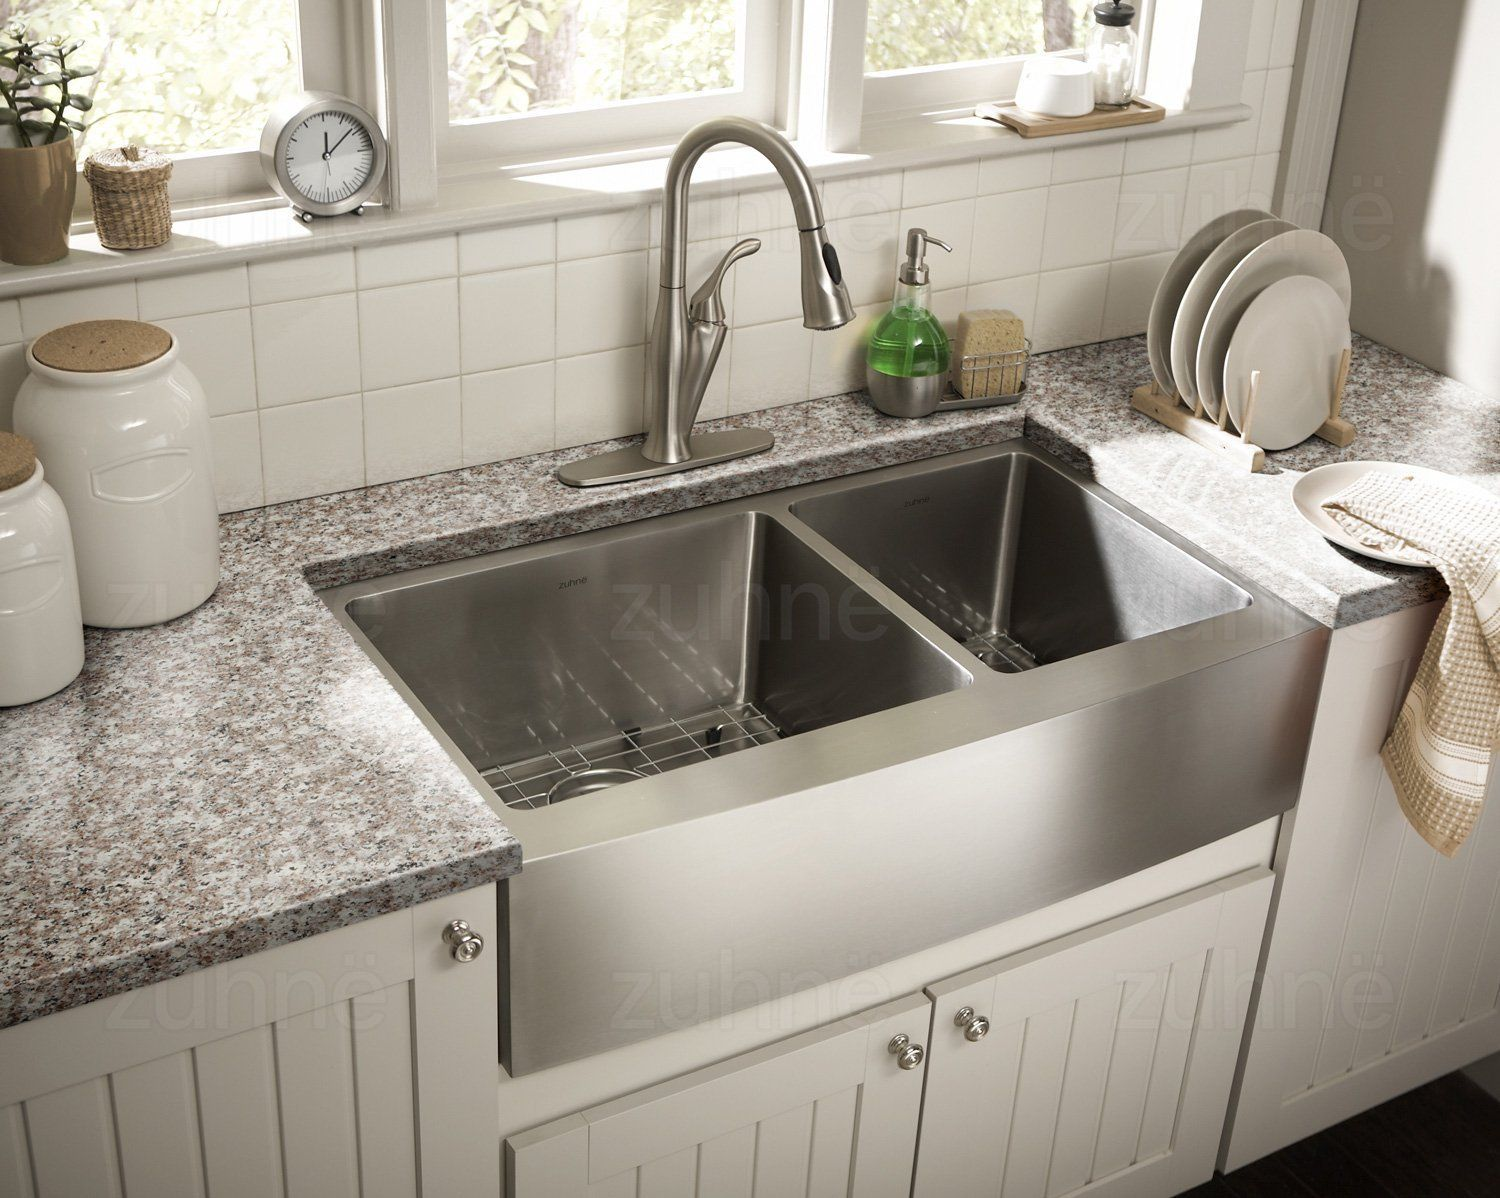 Zuhne Turin 33 Inch Farmhouse Apron 60 40 Deep Double Bowl 16 Gauge Stainless Steel Luxury K Apron Front Kitchen Sink Apron Sink Kitchen Farmhouse Sink Kitchen